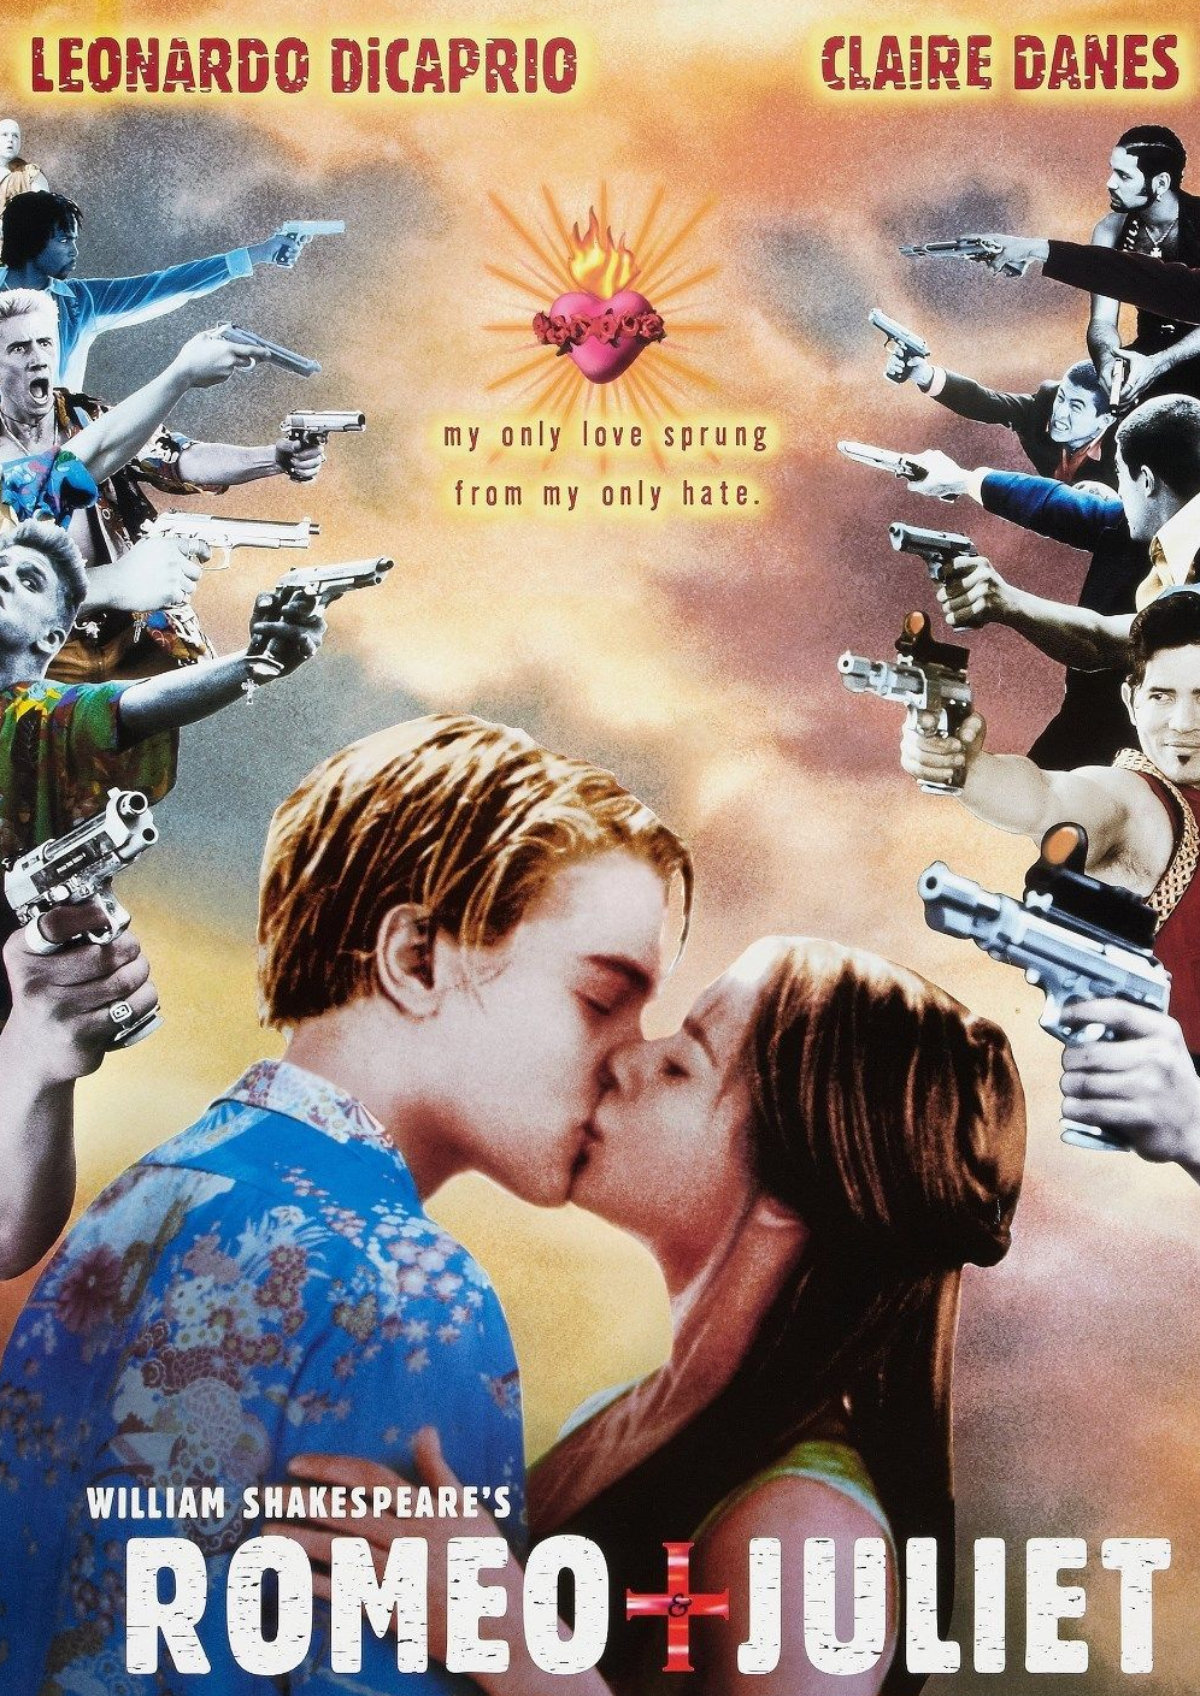 'William Shakespeare's Romeo + Juliet' movie poster